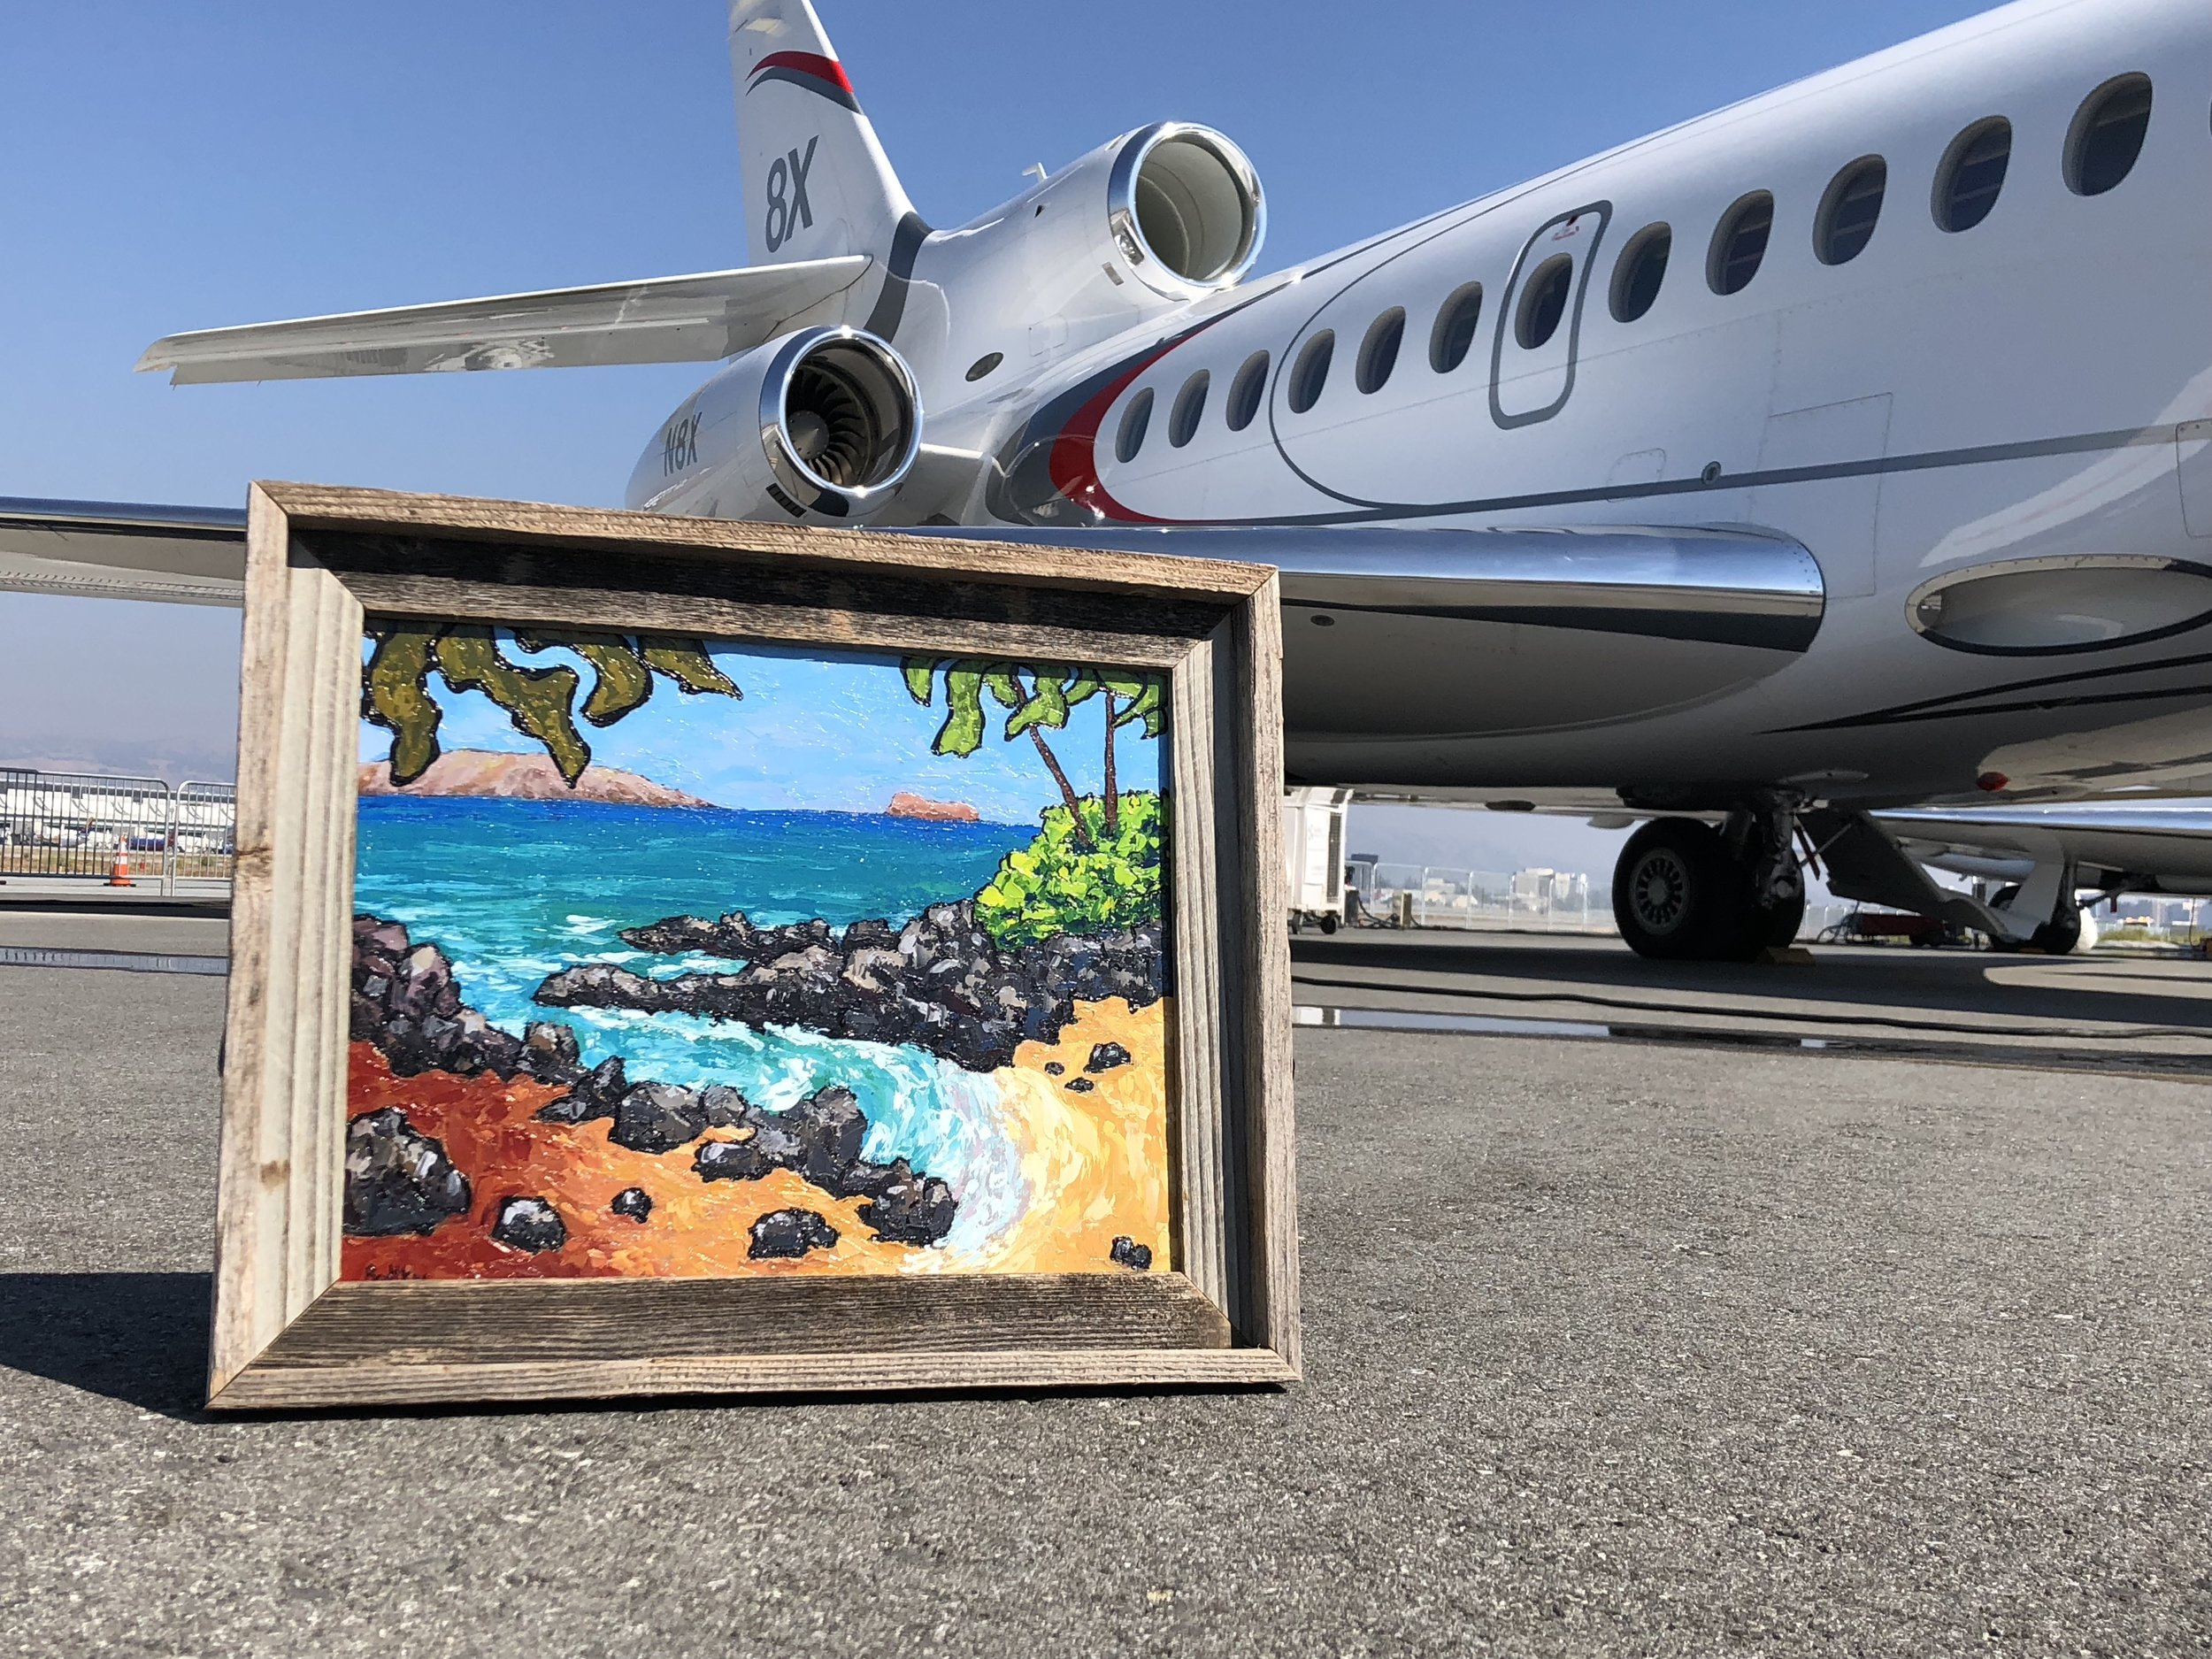 This Dassault Falcon 8X can easily fly to Maui which is this the location of this painting.  Heck…it can also fly non-stop to Italy if that's where one prefers to go from San Jose.